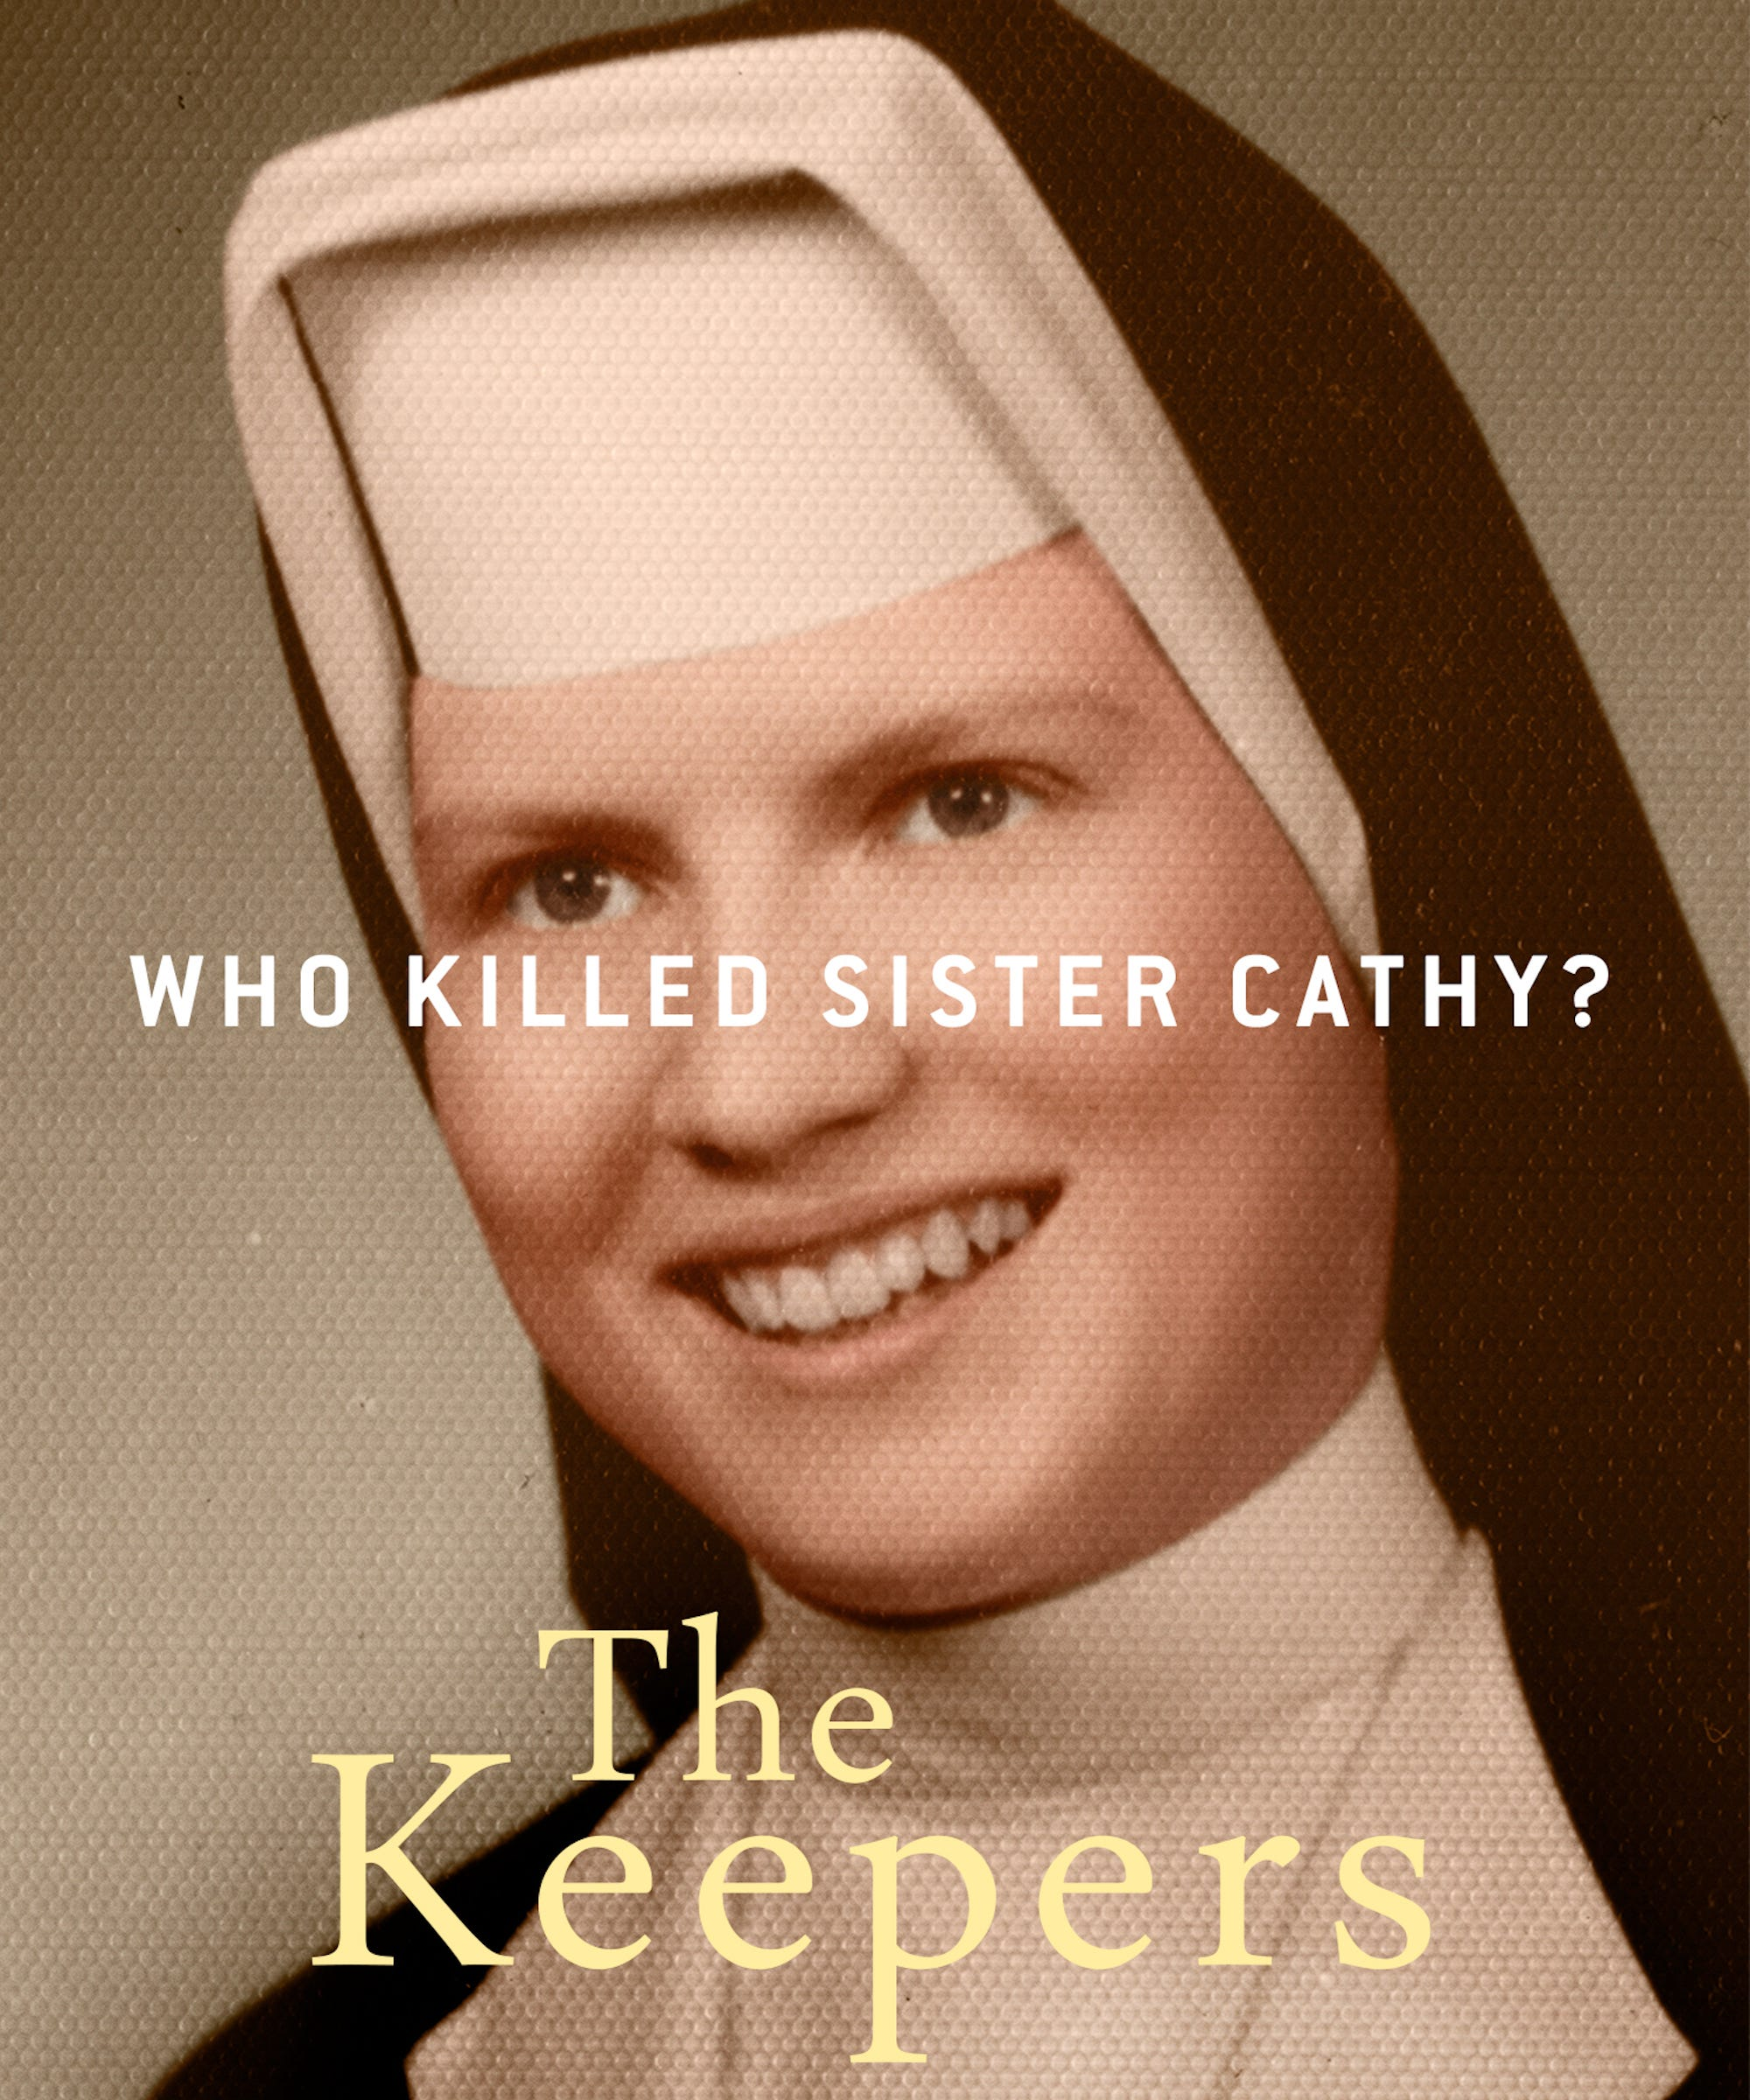 Image result for image the keepers sister cathy